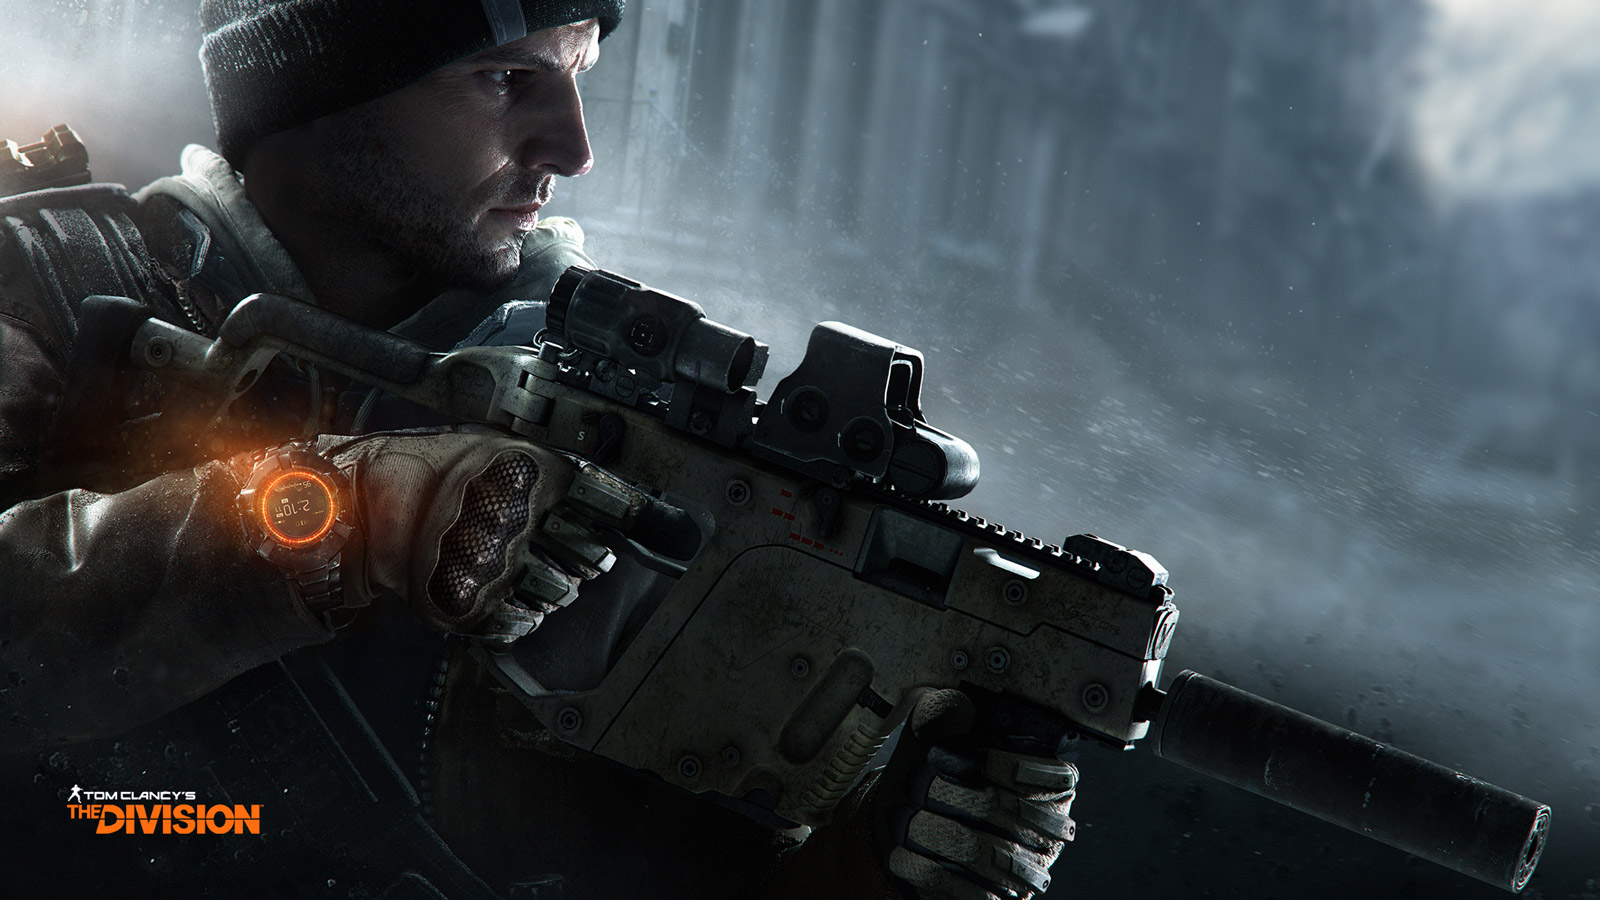 The Division Wallpaper in 1600x900